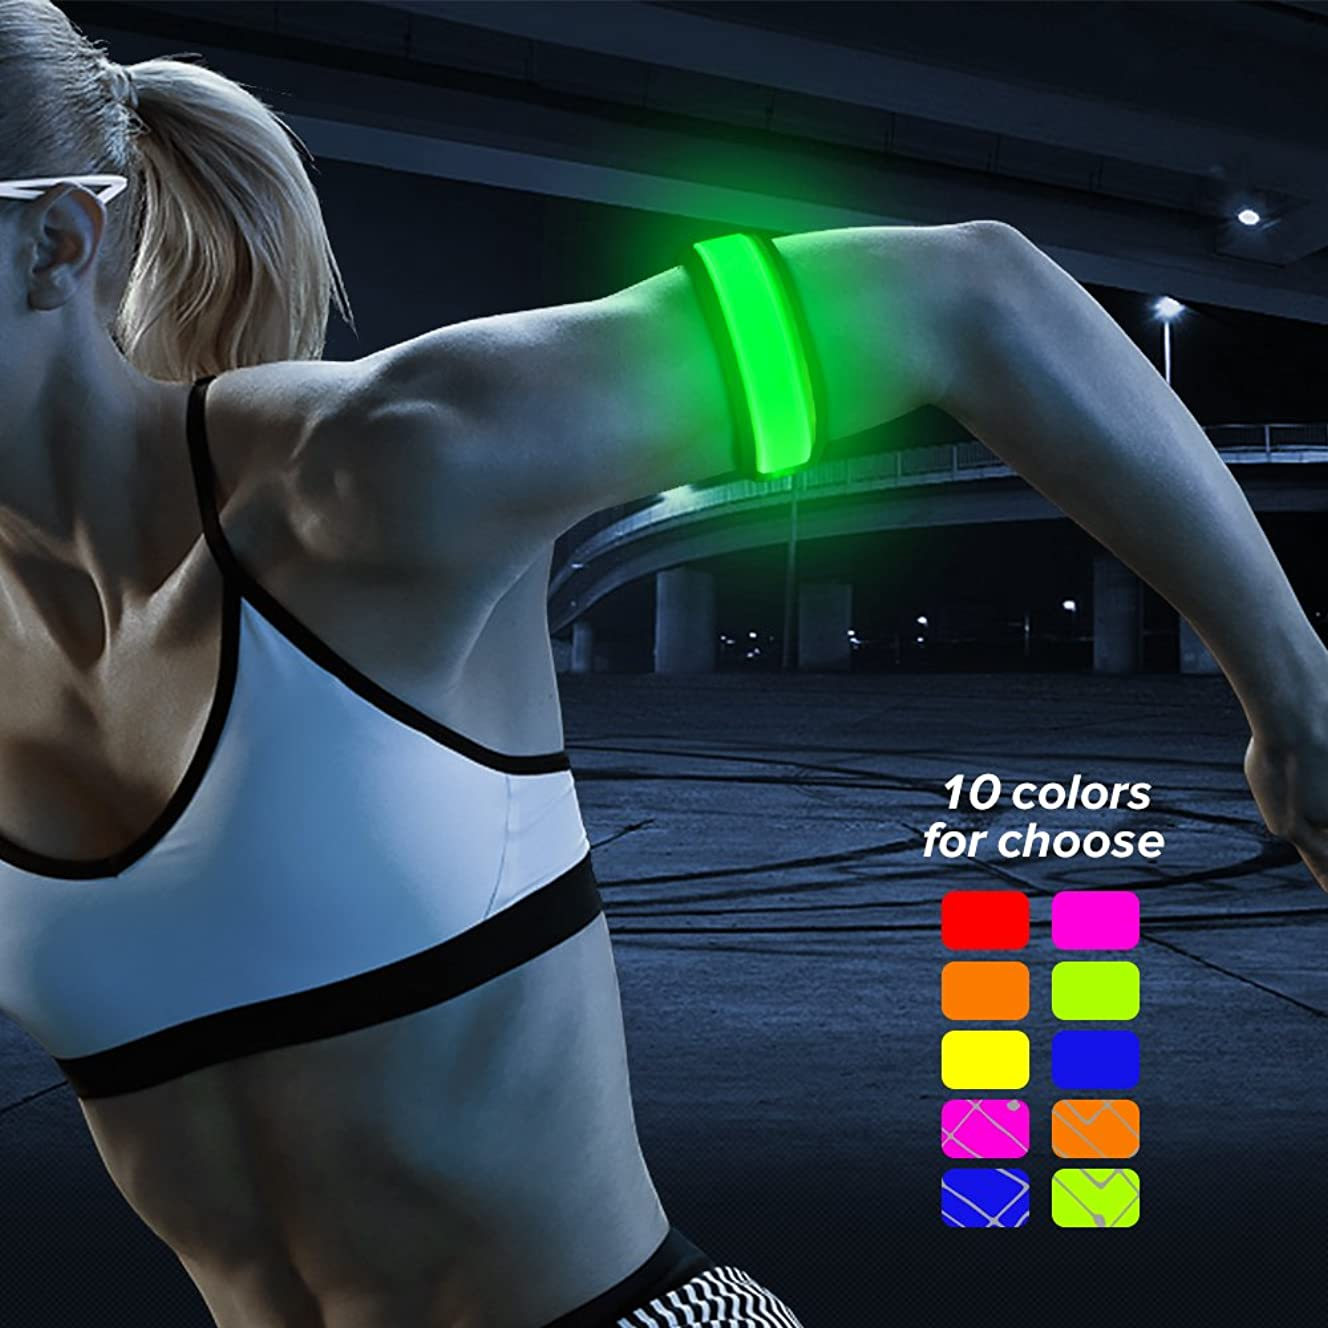 BSEEN LED Armband, Glow in The Dark Led Slap Bracelets Sports Safety Event Wristband, for Runners, Joggers, Cyclists